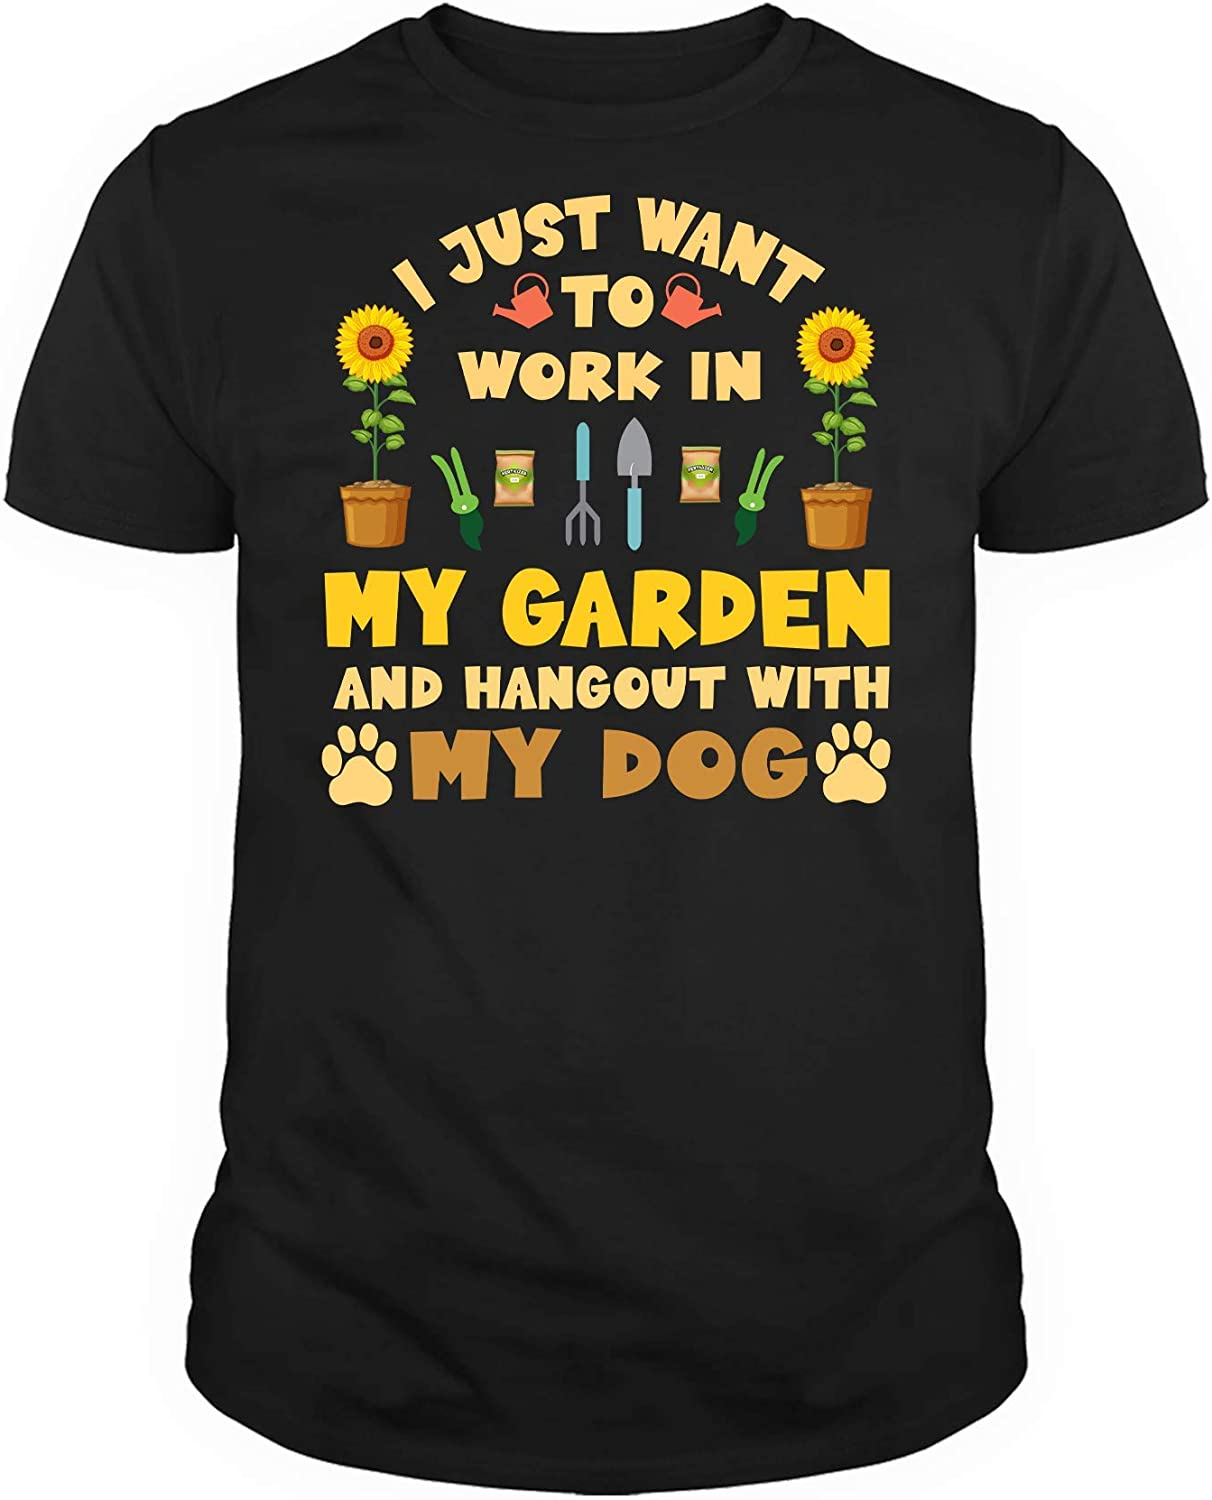 I Just Want to Work in My Garden and Hangout with My Dog